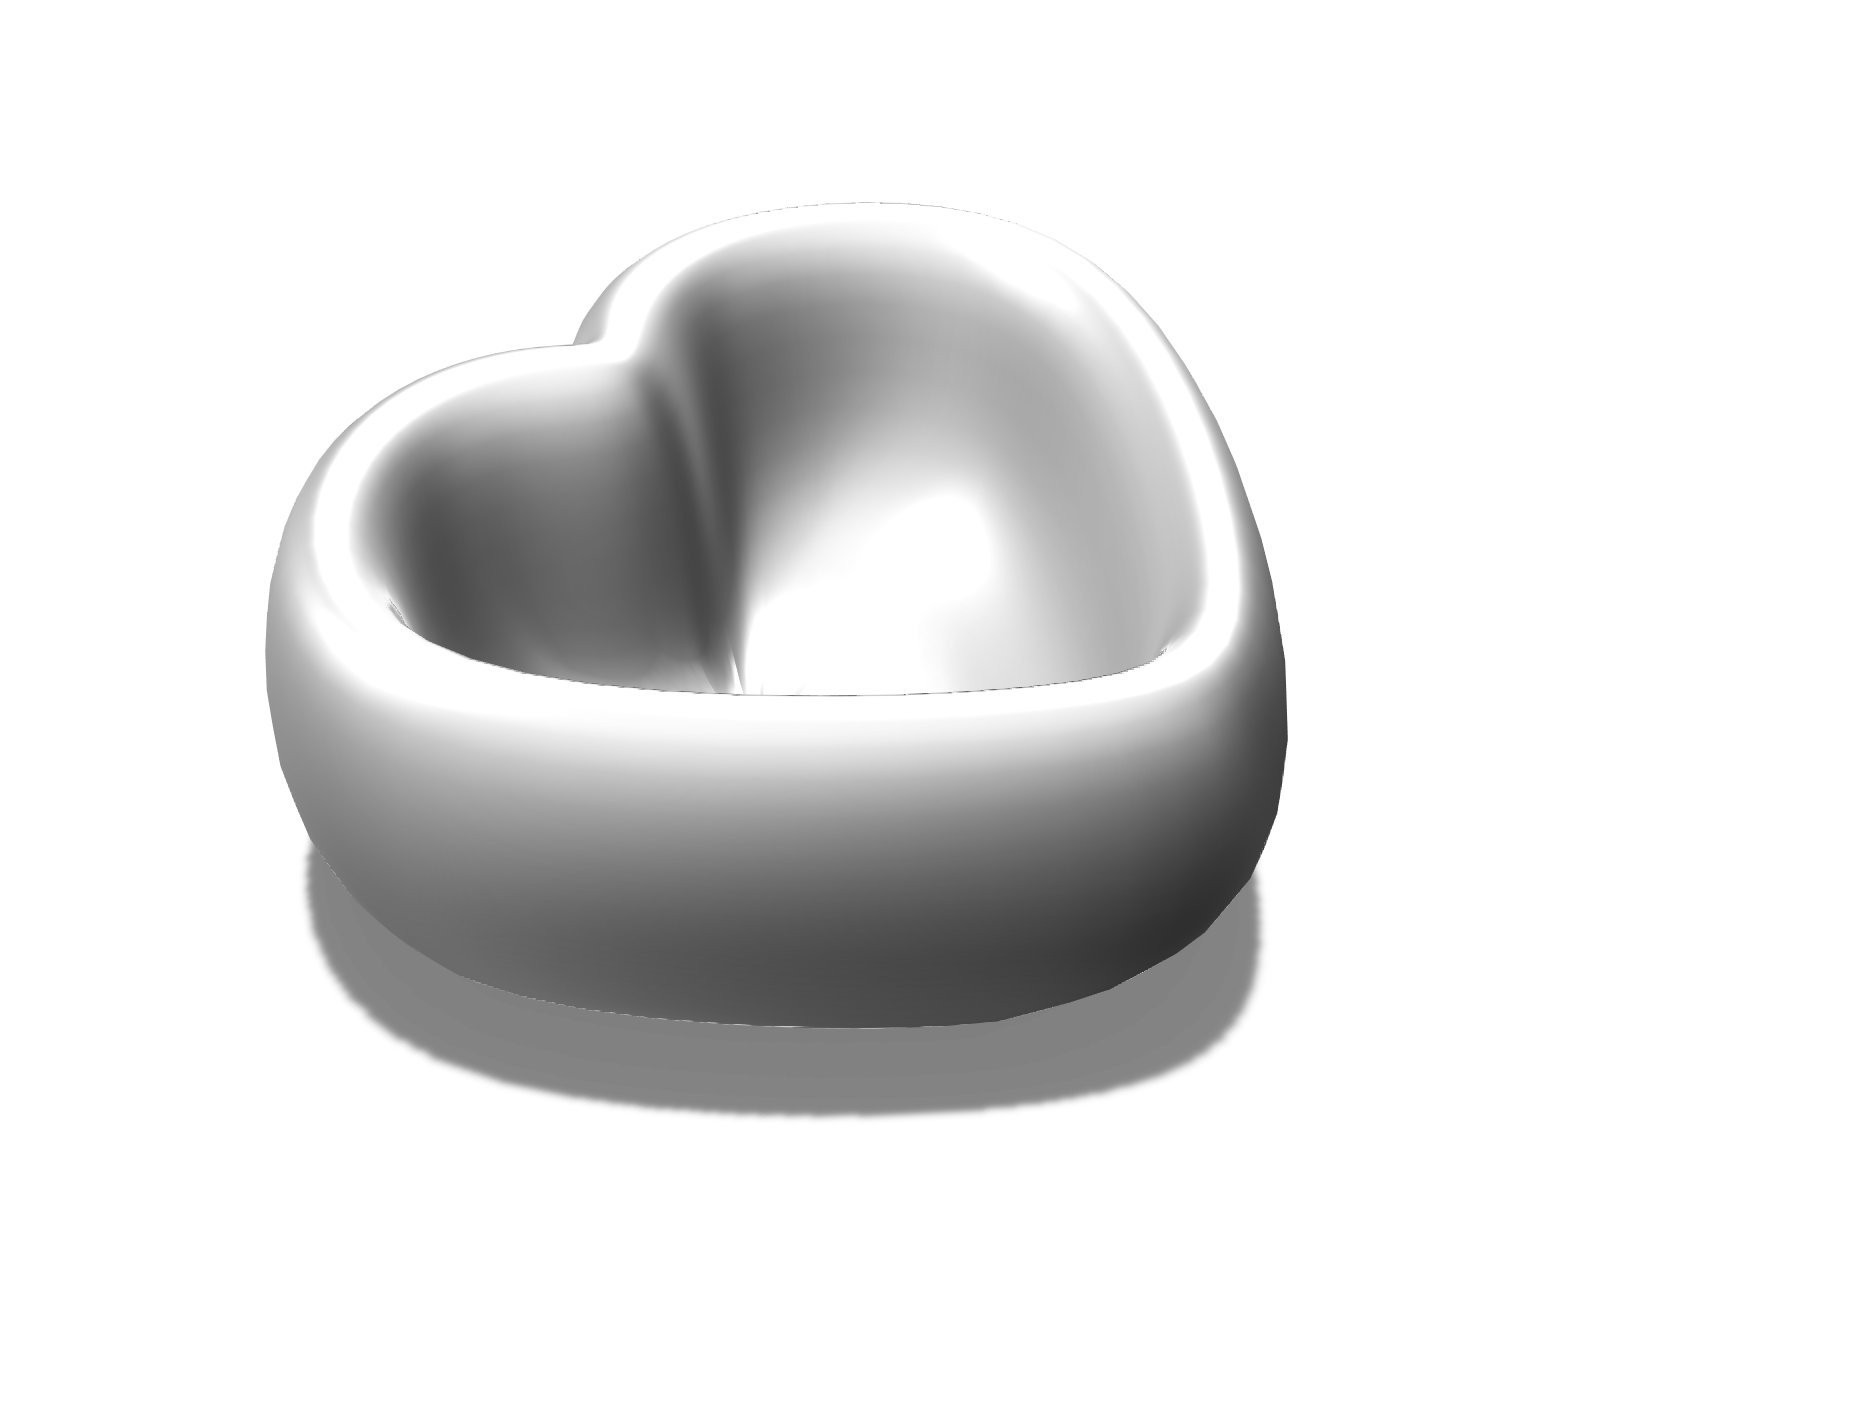 Heart - 3D design by Nico Salazar Feb 5, 2018